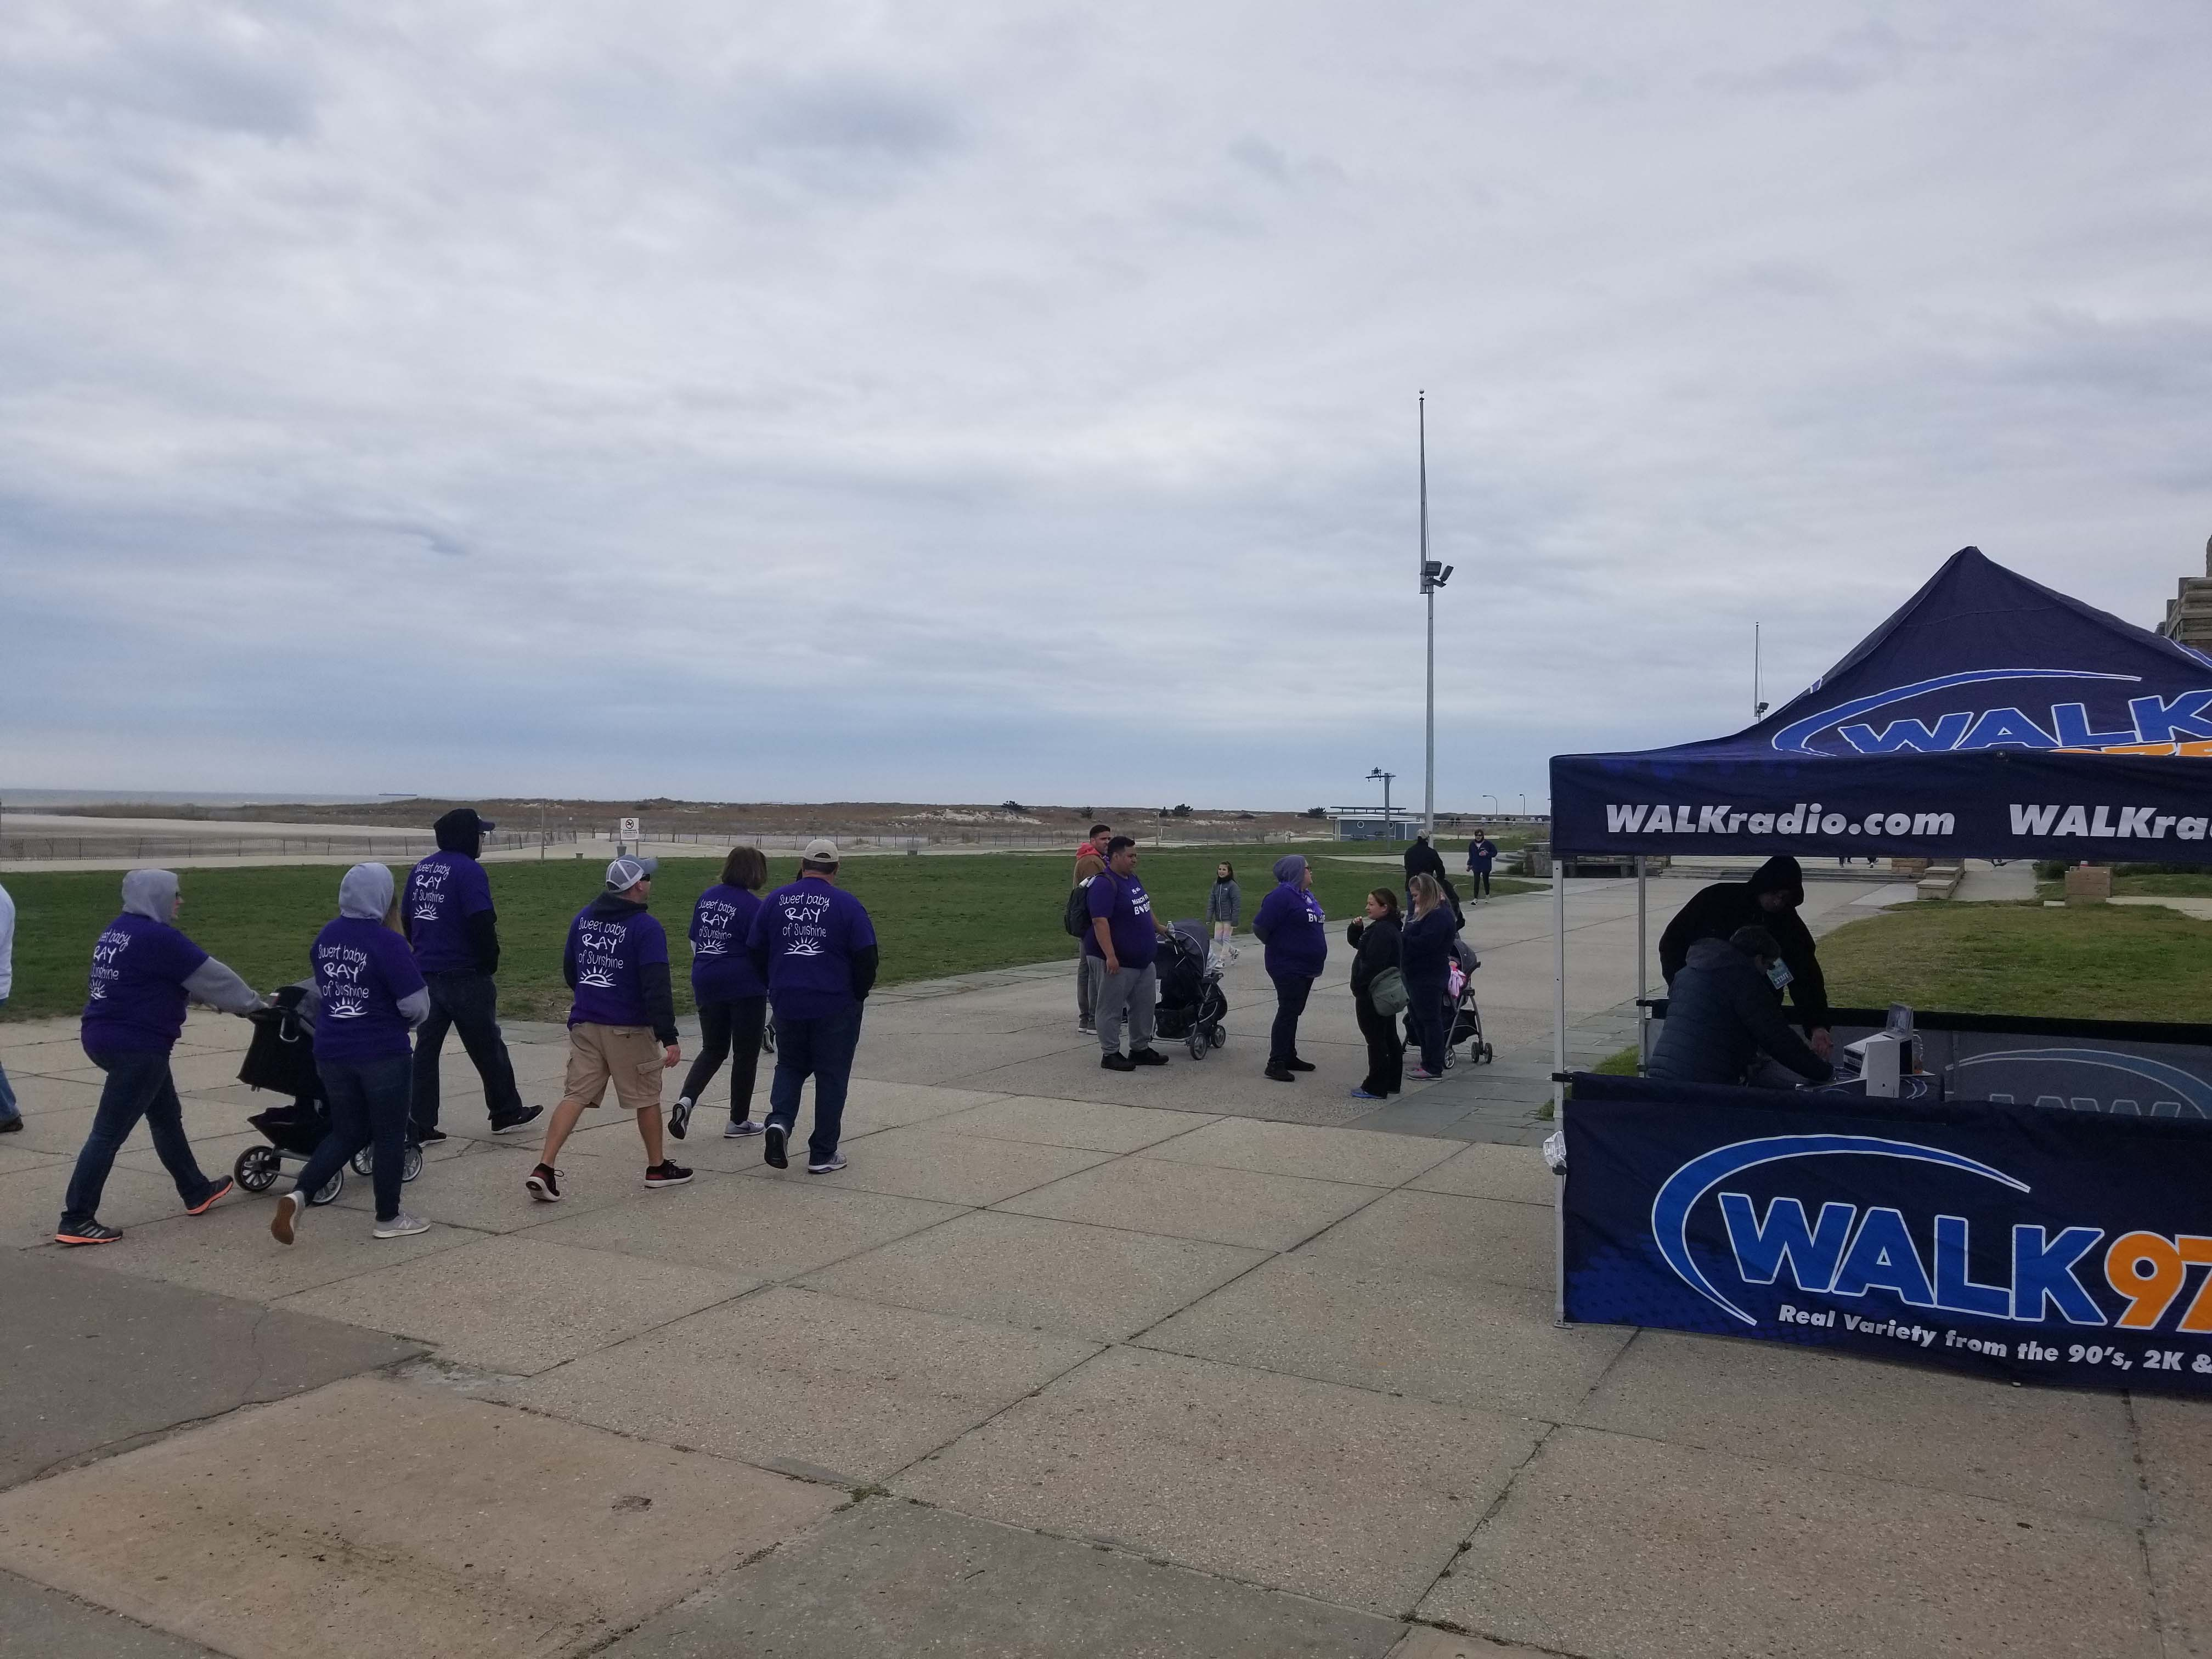 Walk97.5 @ March of Dimes/March for Babies